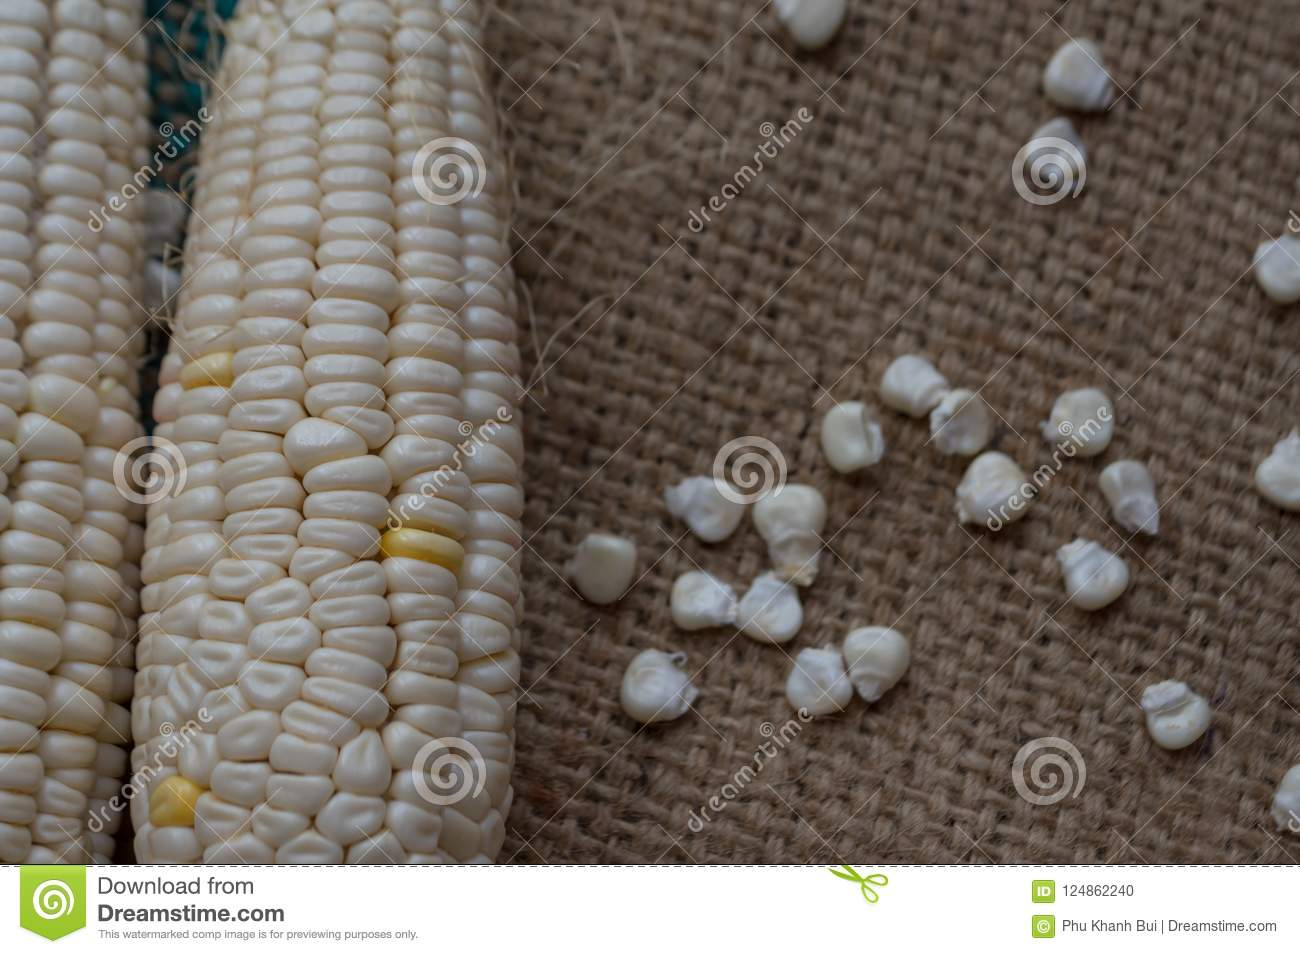 maize products owner